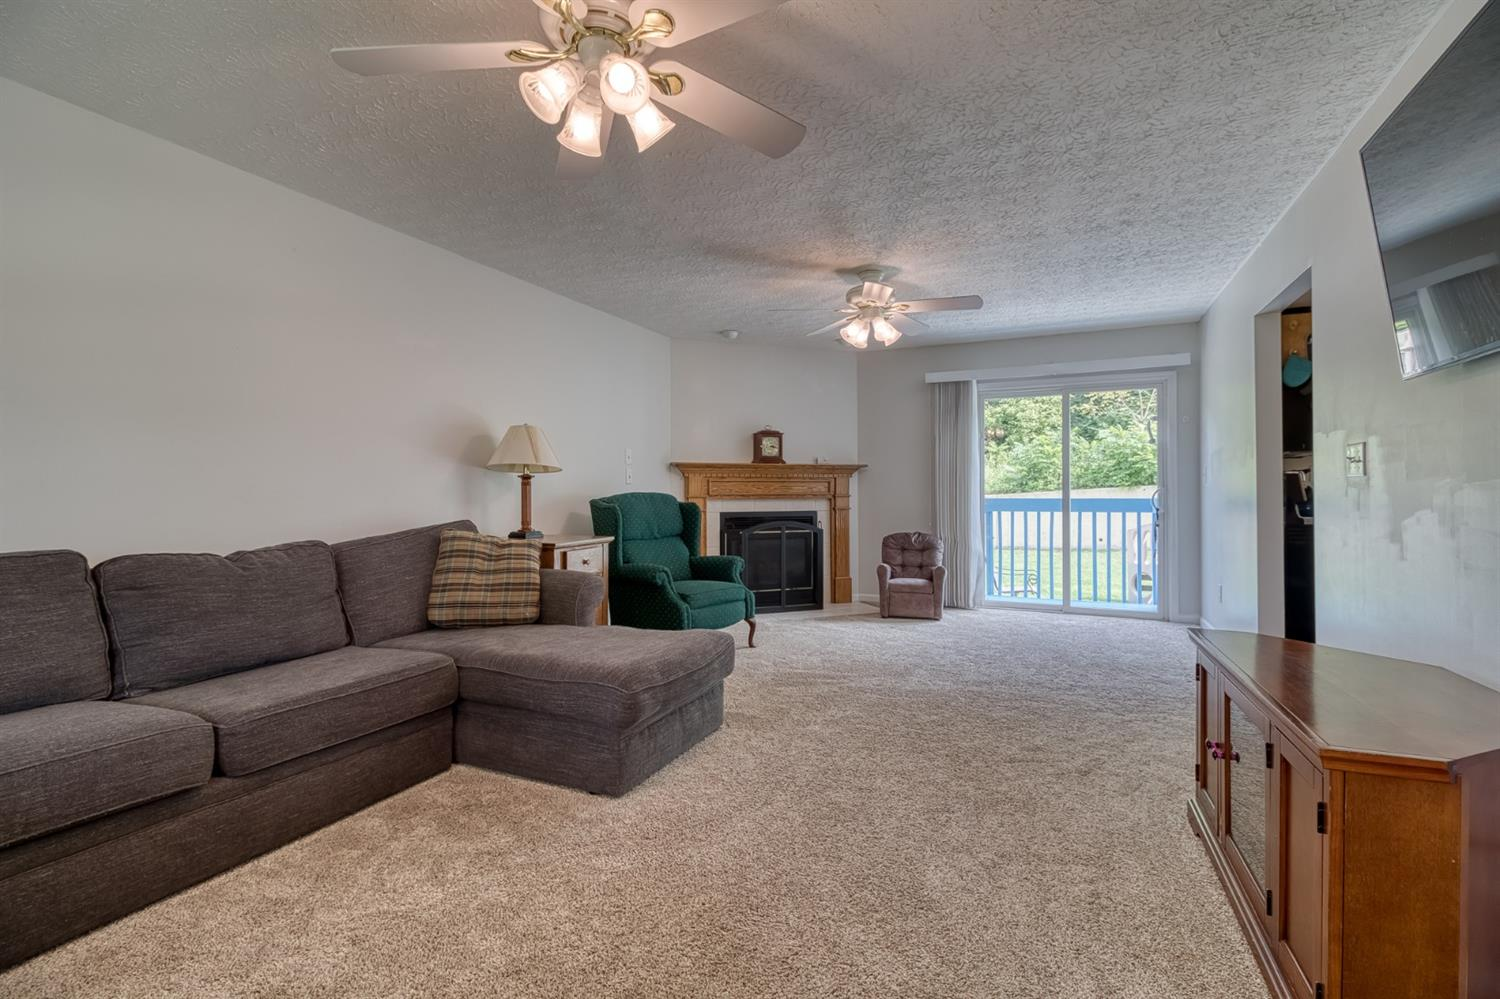 Photo 3 for 585 Riverbend Ct Fairfield, OH 45014